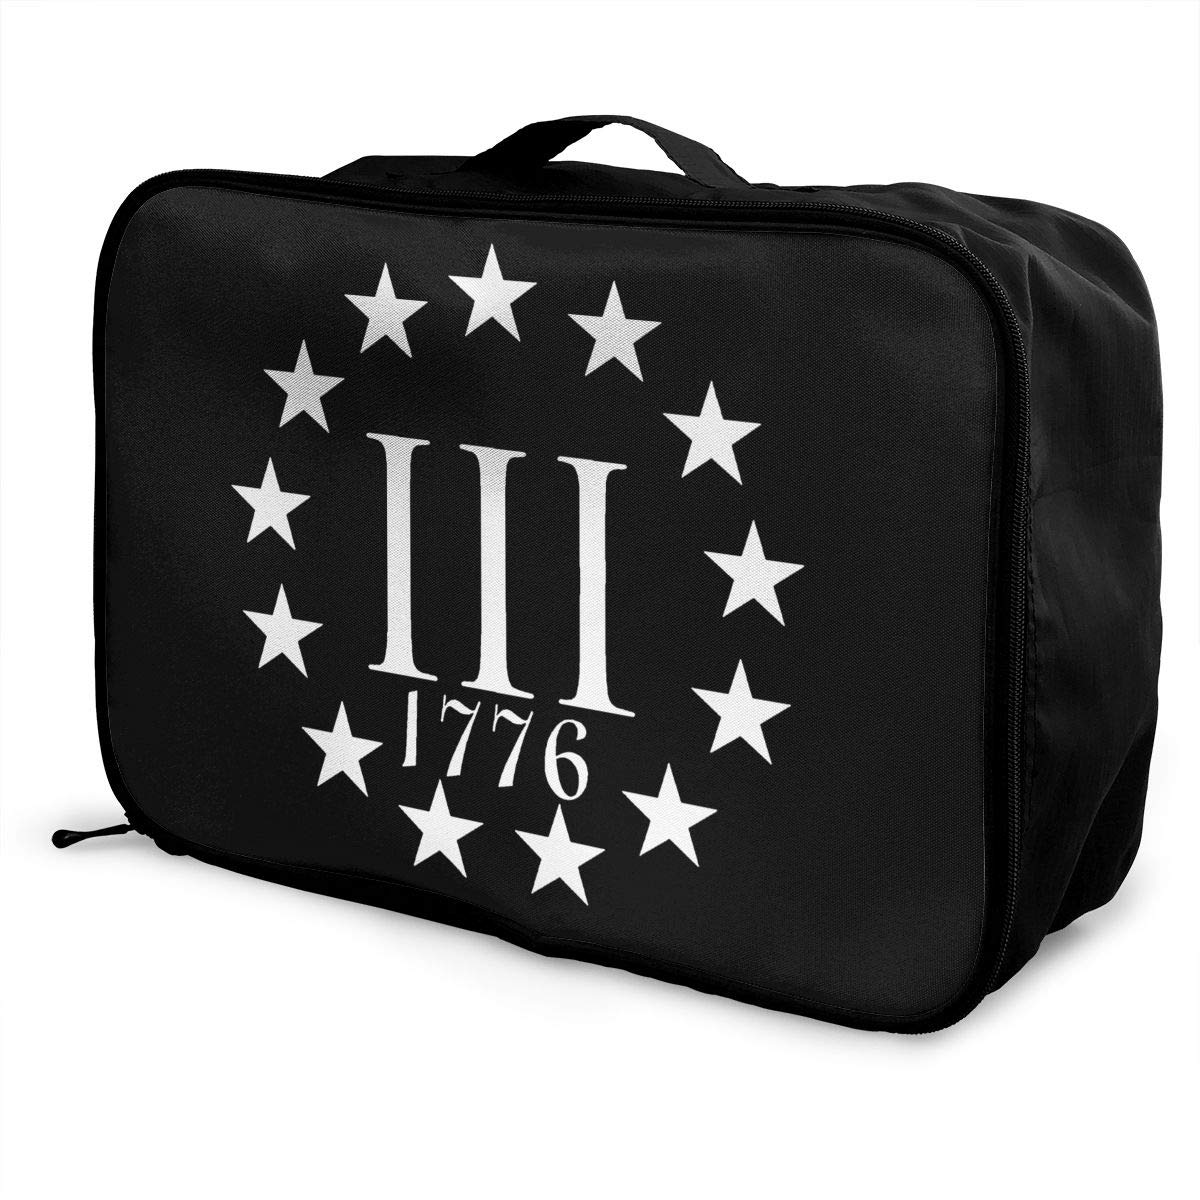 Three Percenter 1776 Travel Bag Men Women 3D Print Pattern Gift Portable Waterproof Oxford Cloth Bags